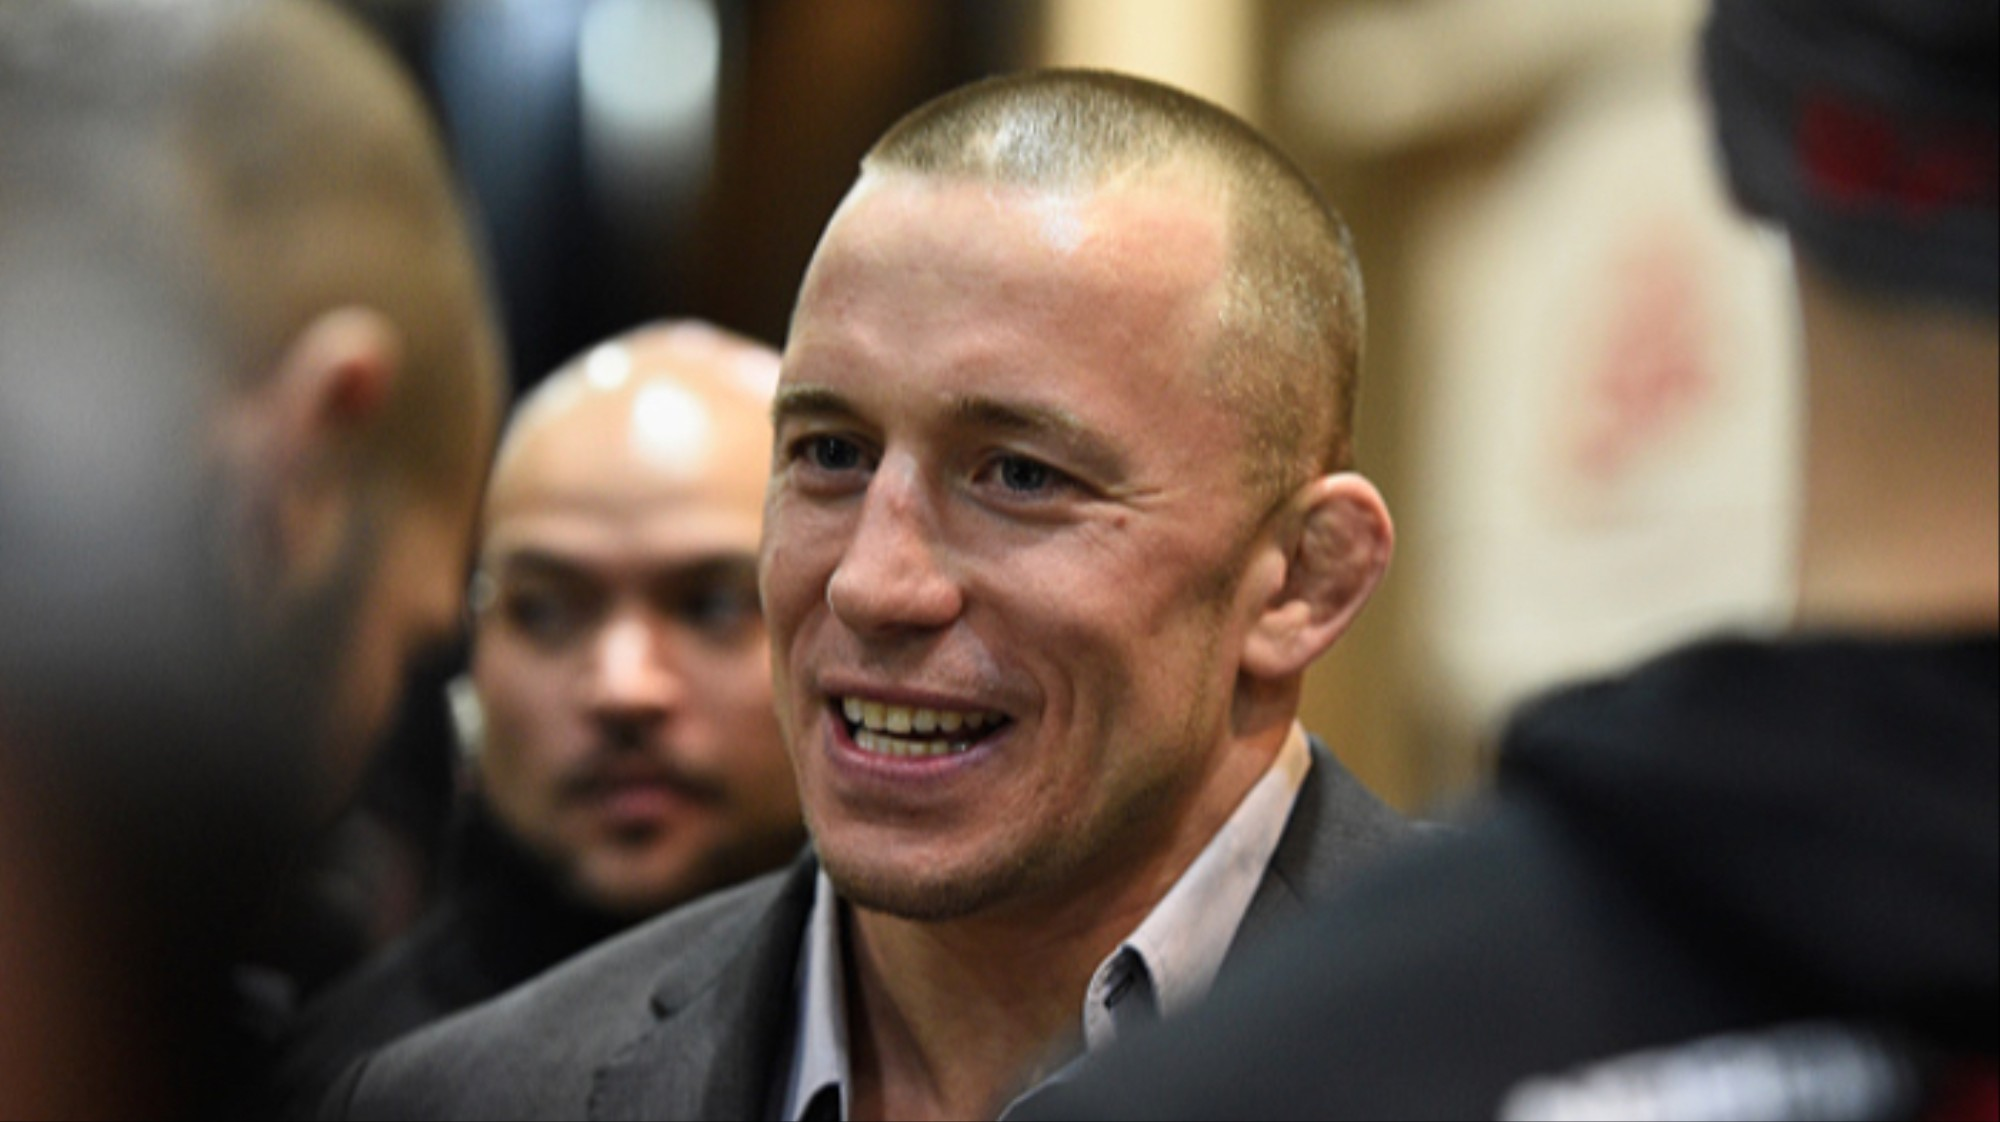 Hopefully Georges St-Pierre's Return Won't Involve a Courtroom - VICE